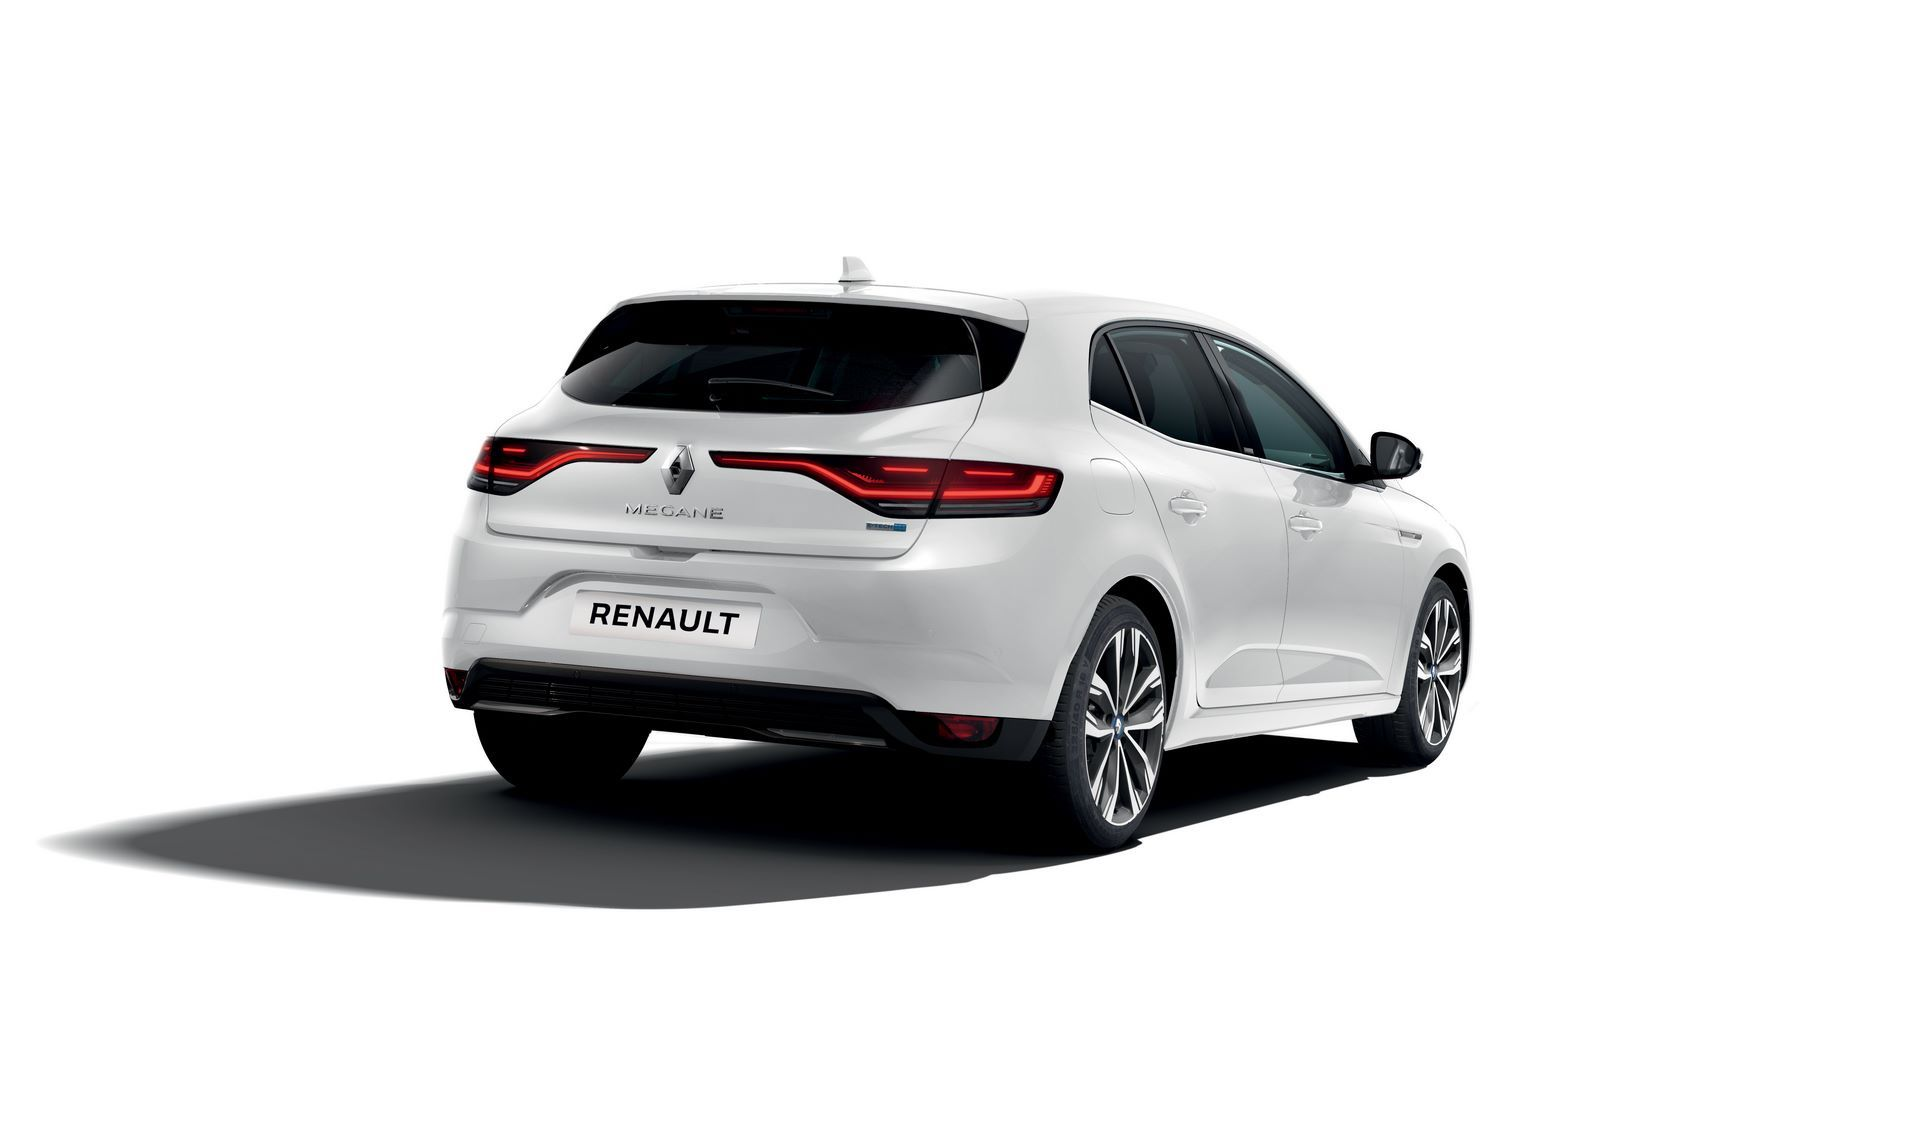 2020-New-Renault-MEGANE-Berline-E-TECH-Plug-In-Hybrid-2